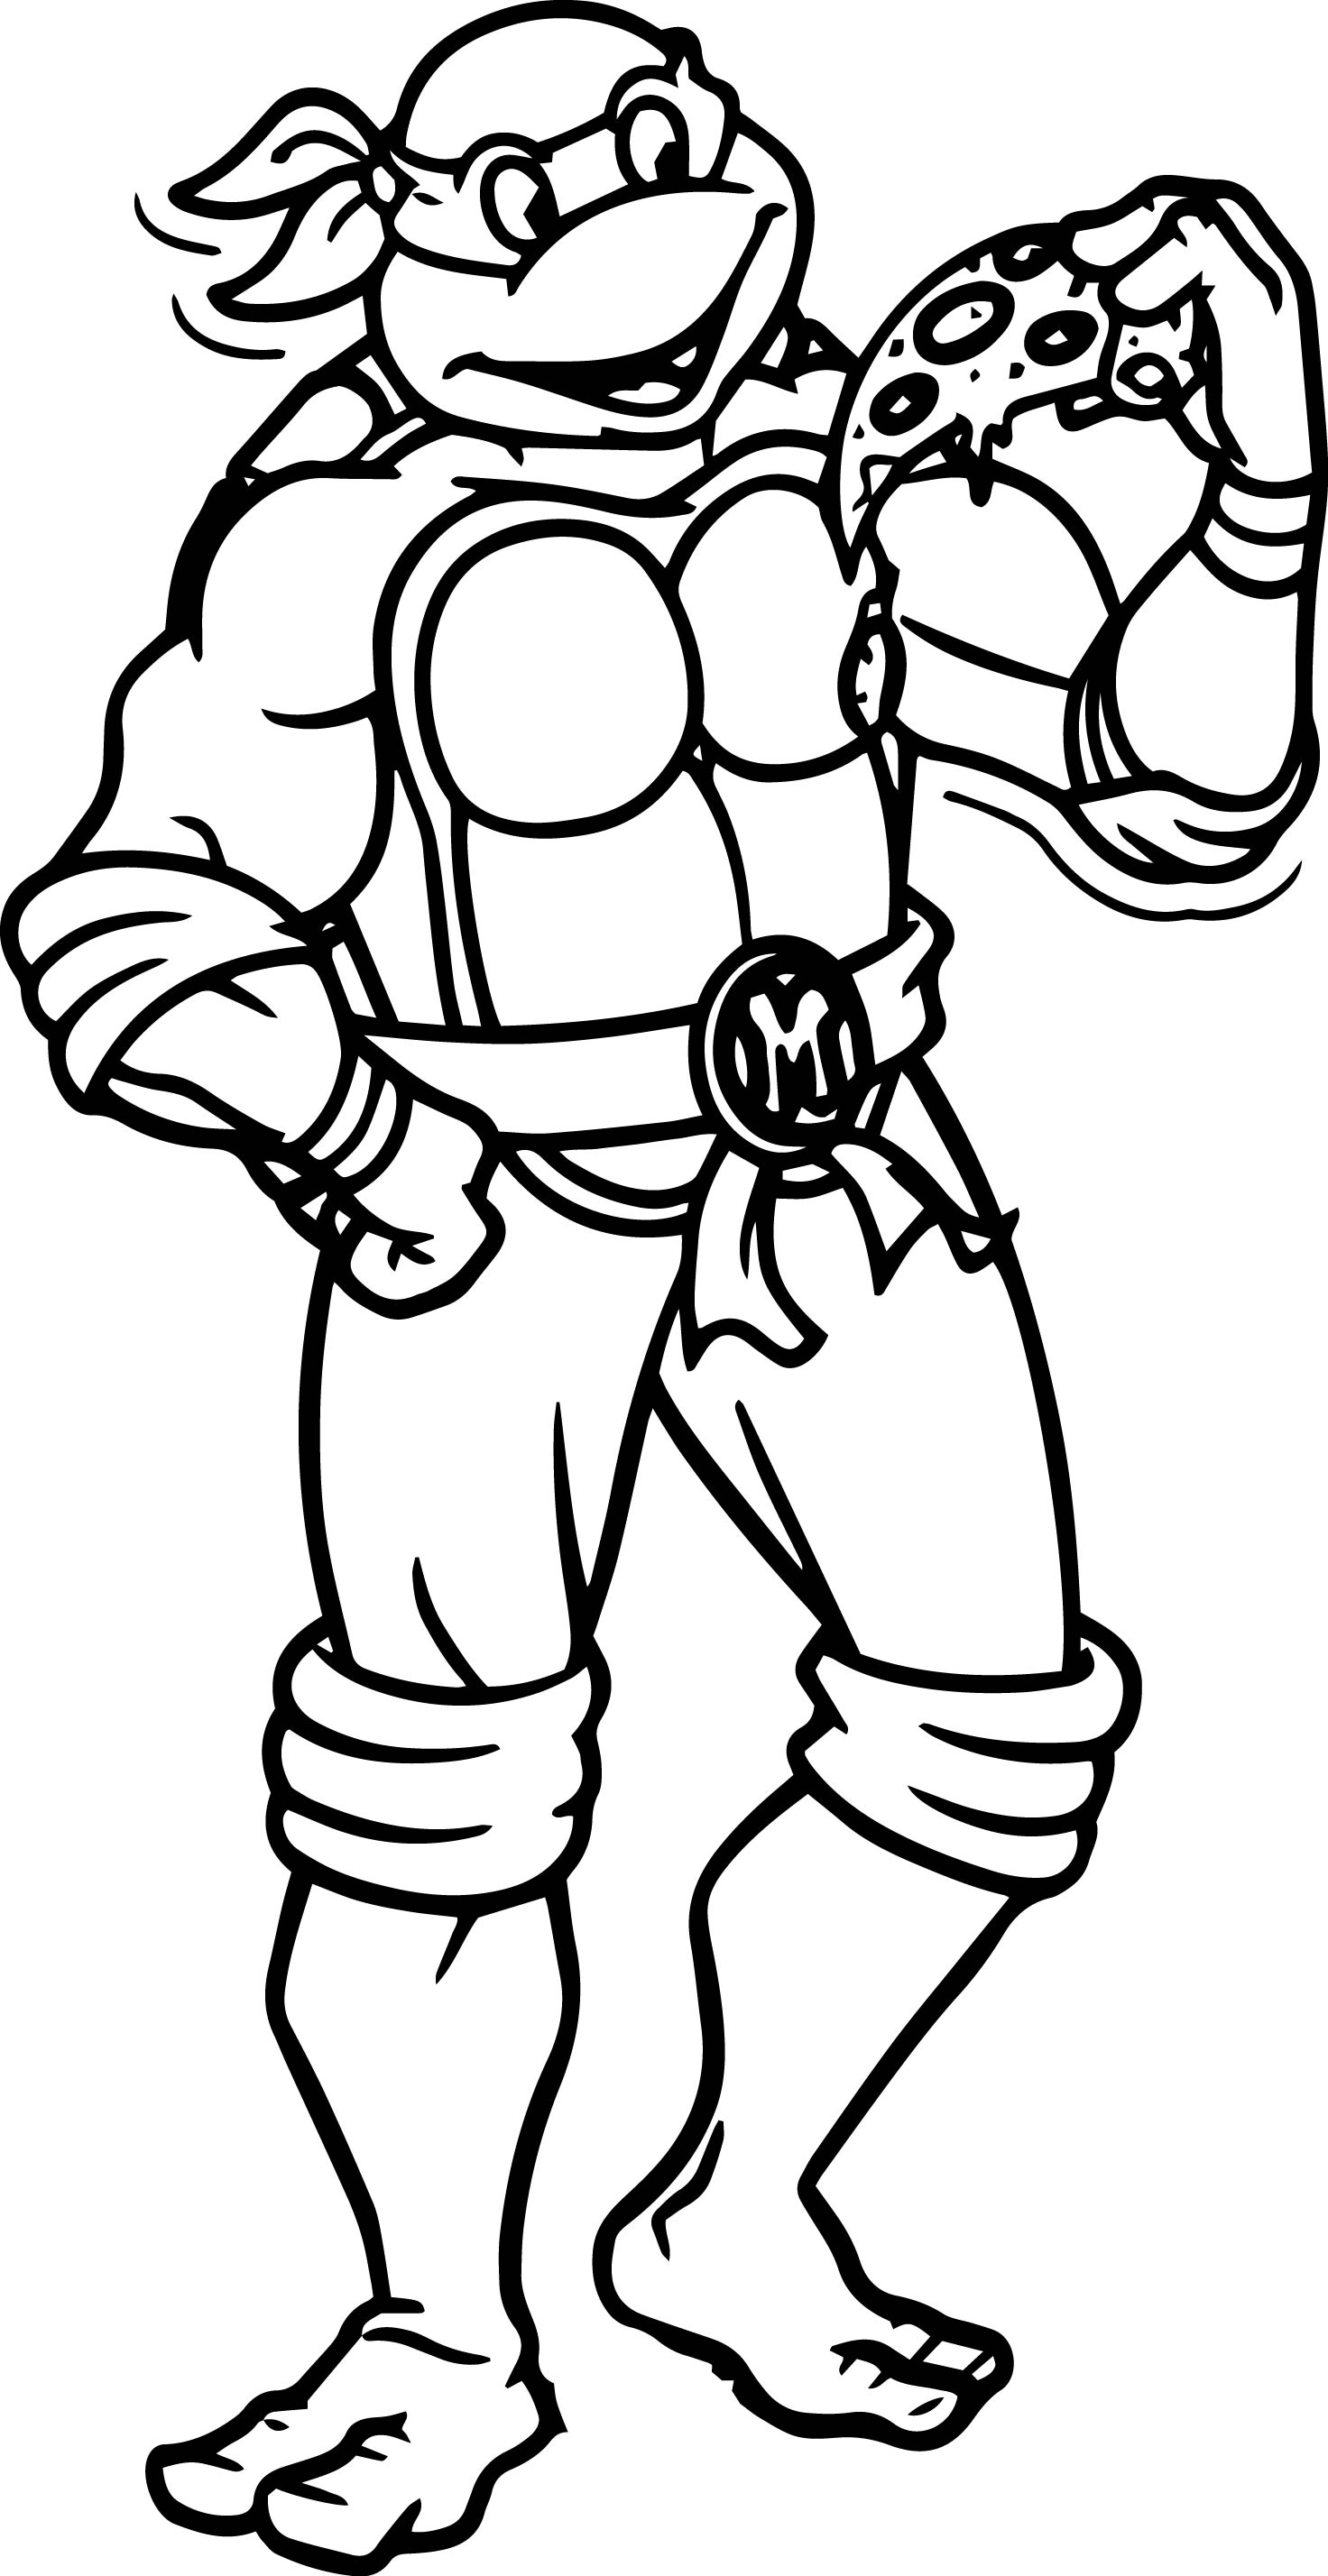 Ninja Turtle Cartoon Coloring Pages | Wecoloringpage